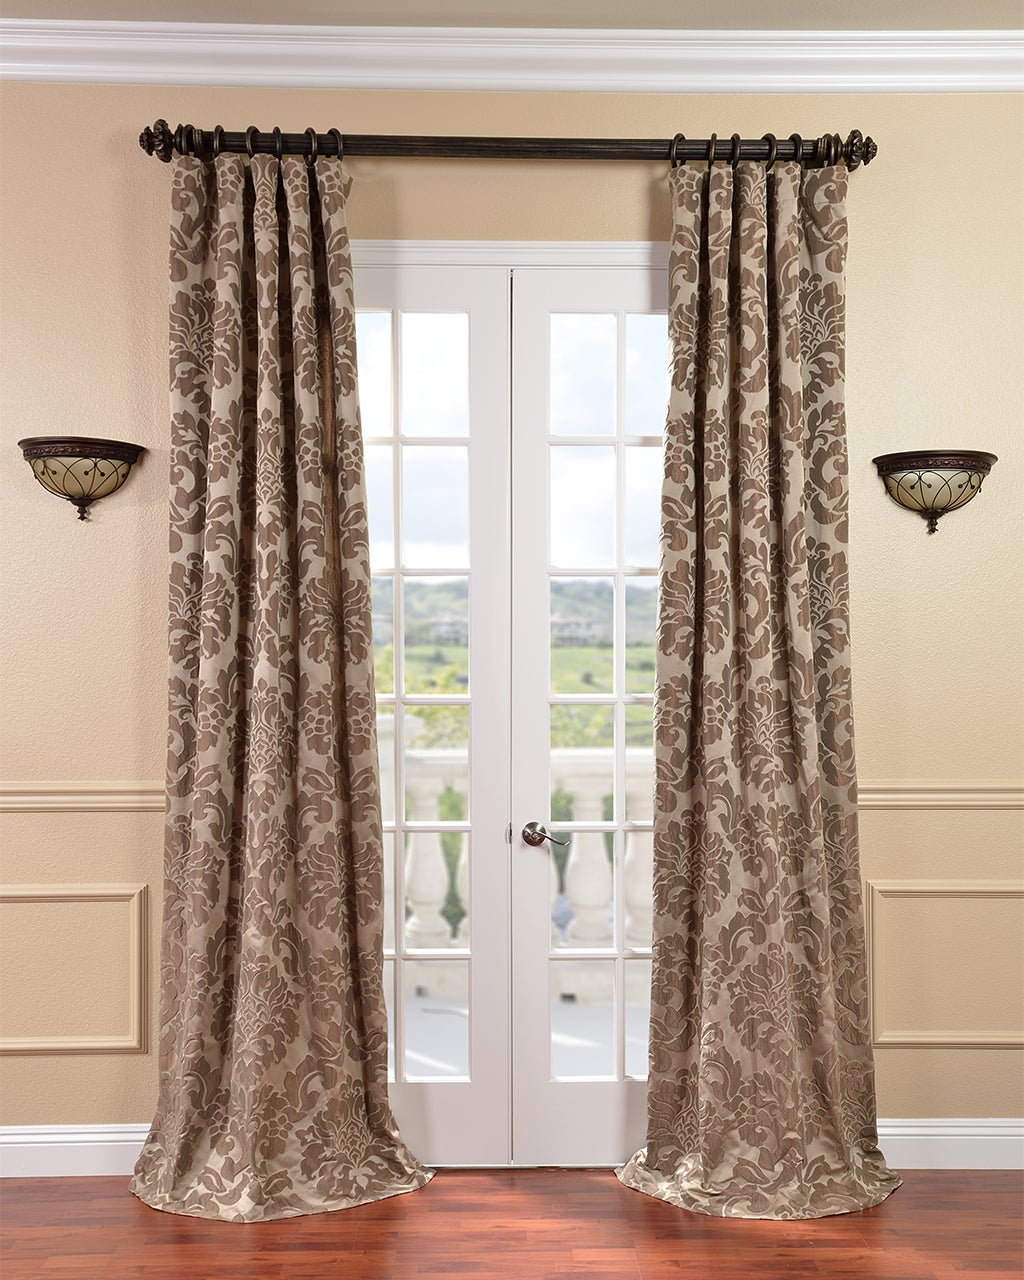 astoria taupe mushroom faux silk jacquard curtains p14741547 89835